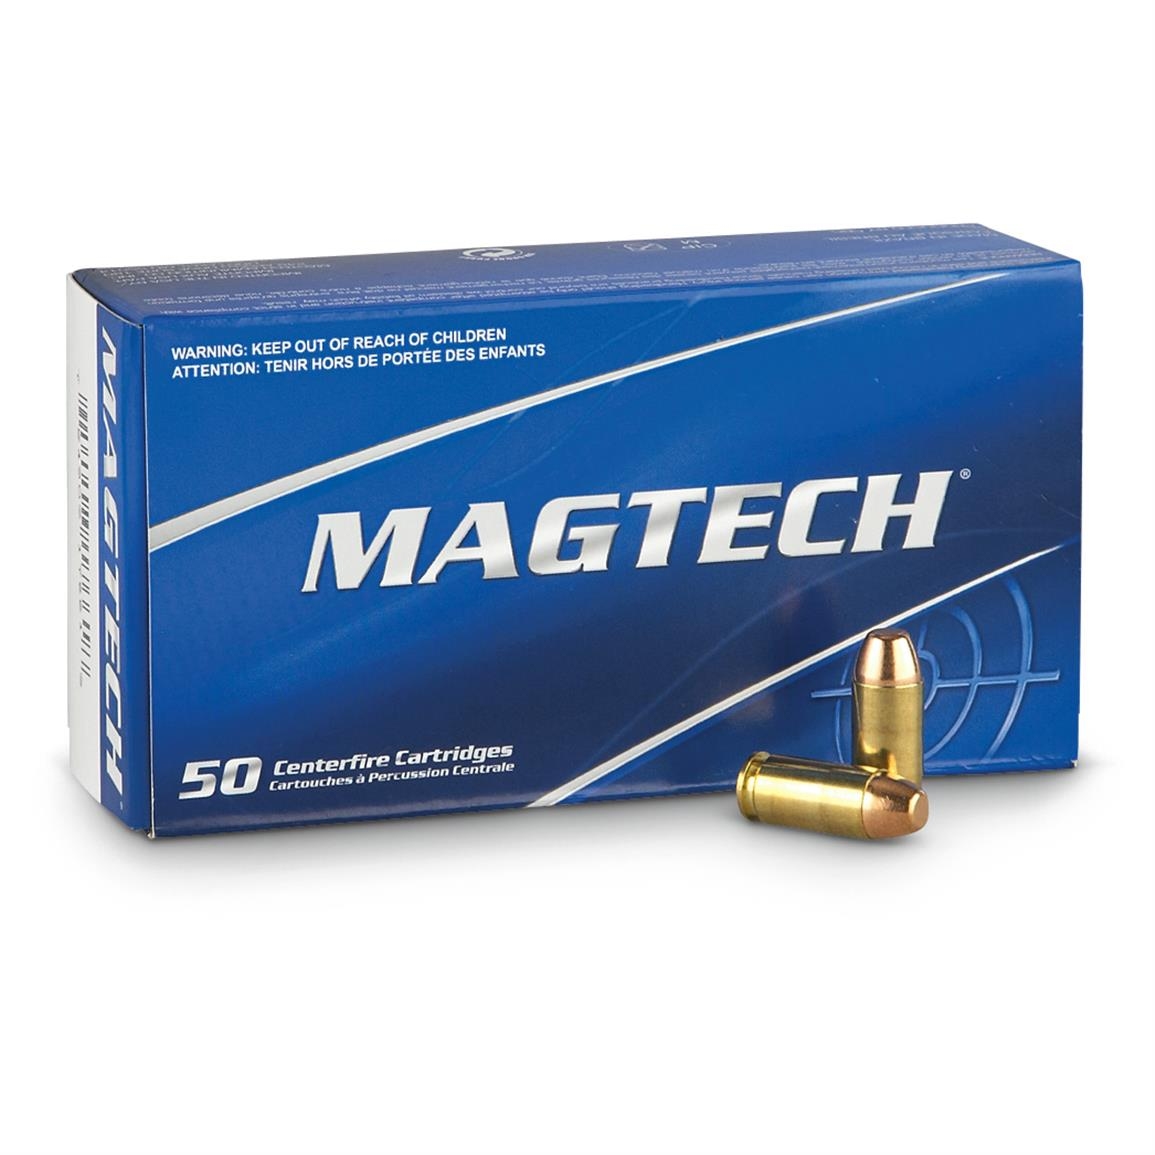 Magtech, 9mm Luger, FMJ, 115 Grain, 1,000 Rounds